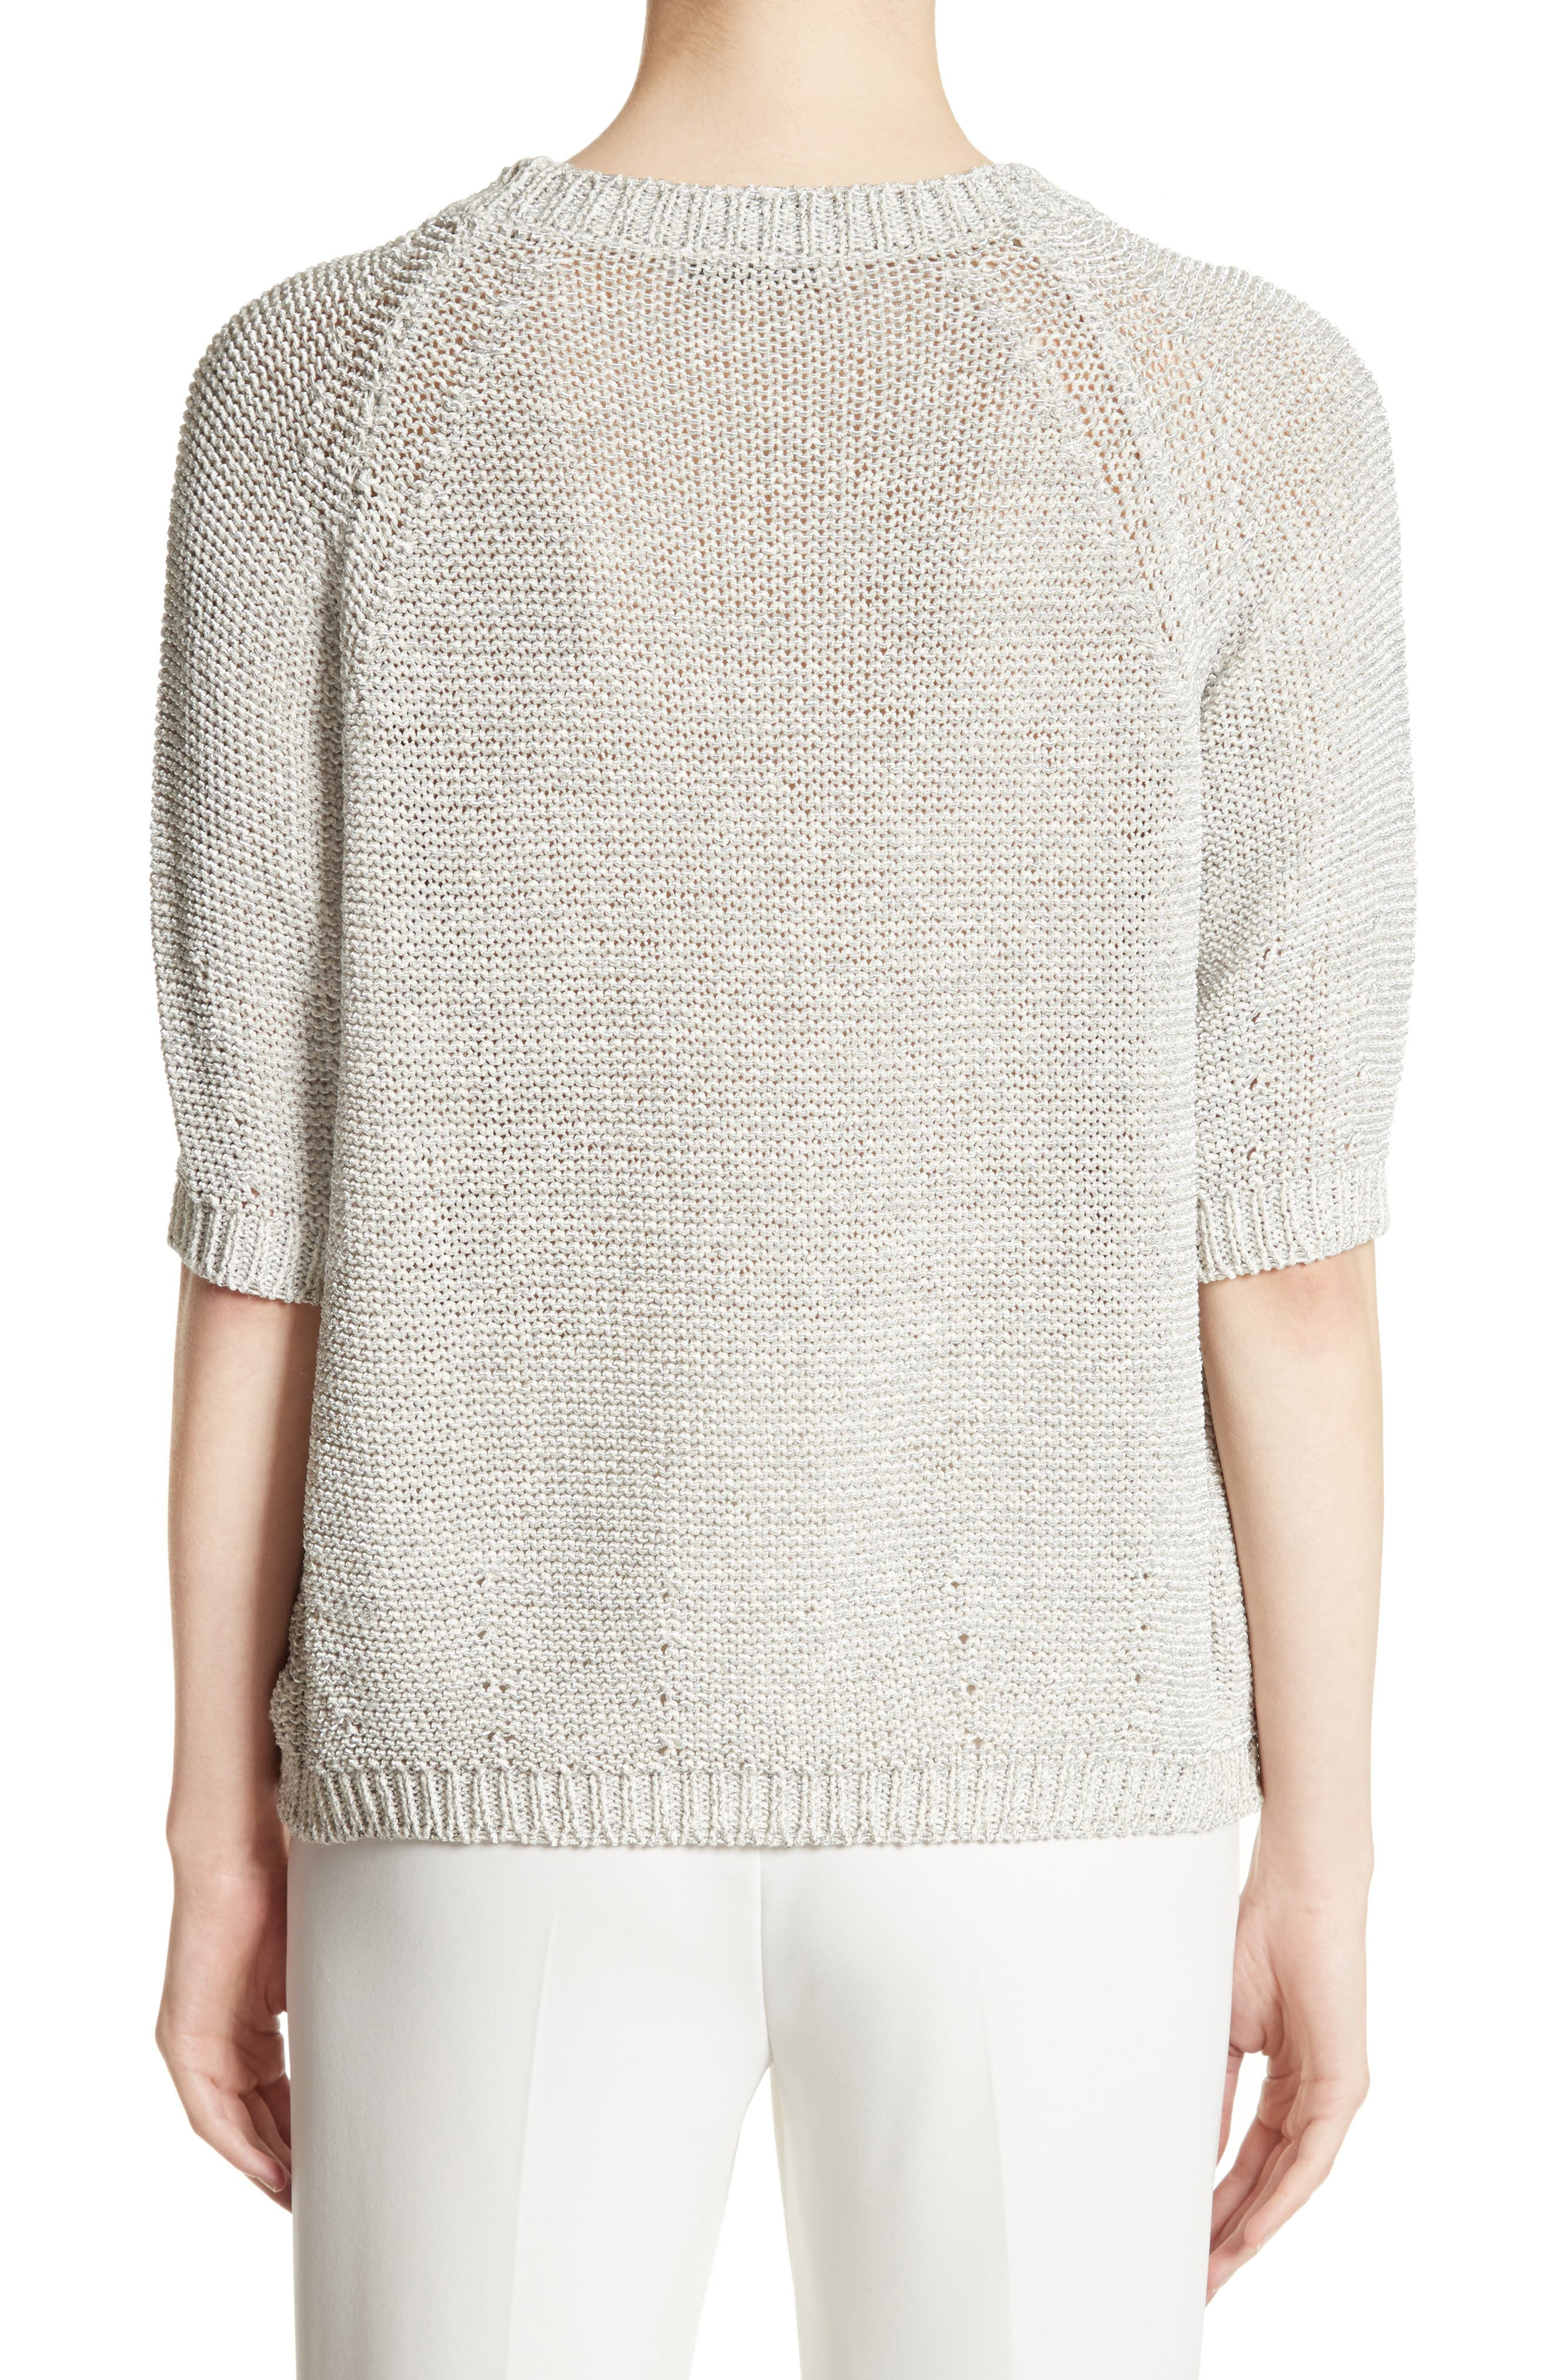 Alternate Image 2  - Max Mara Cotton Blend Sweater